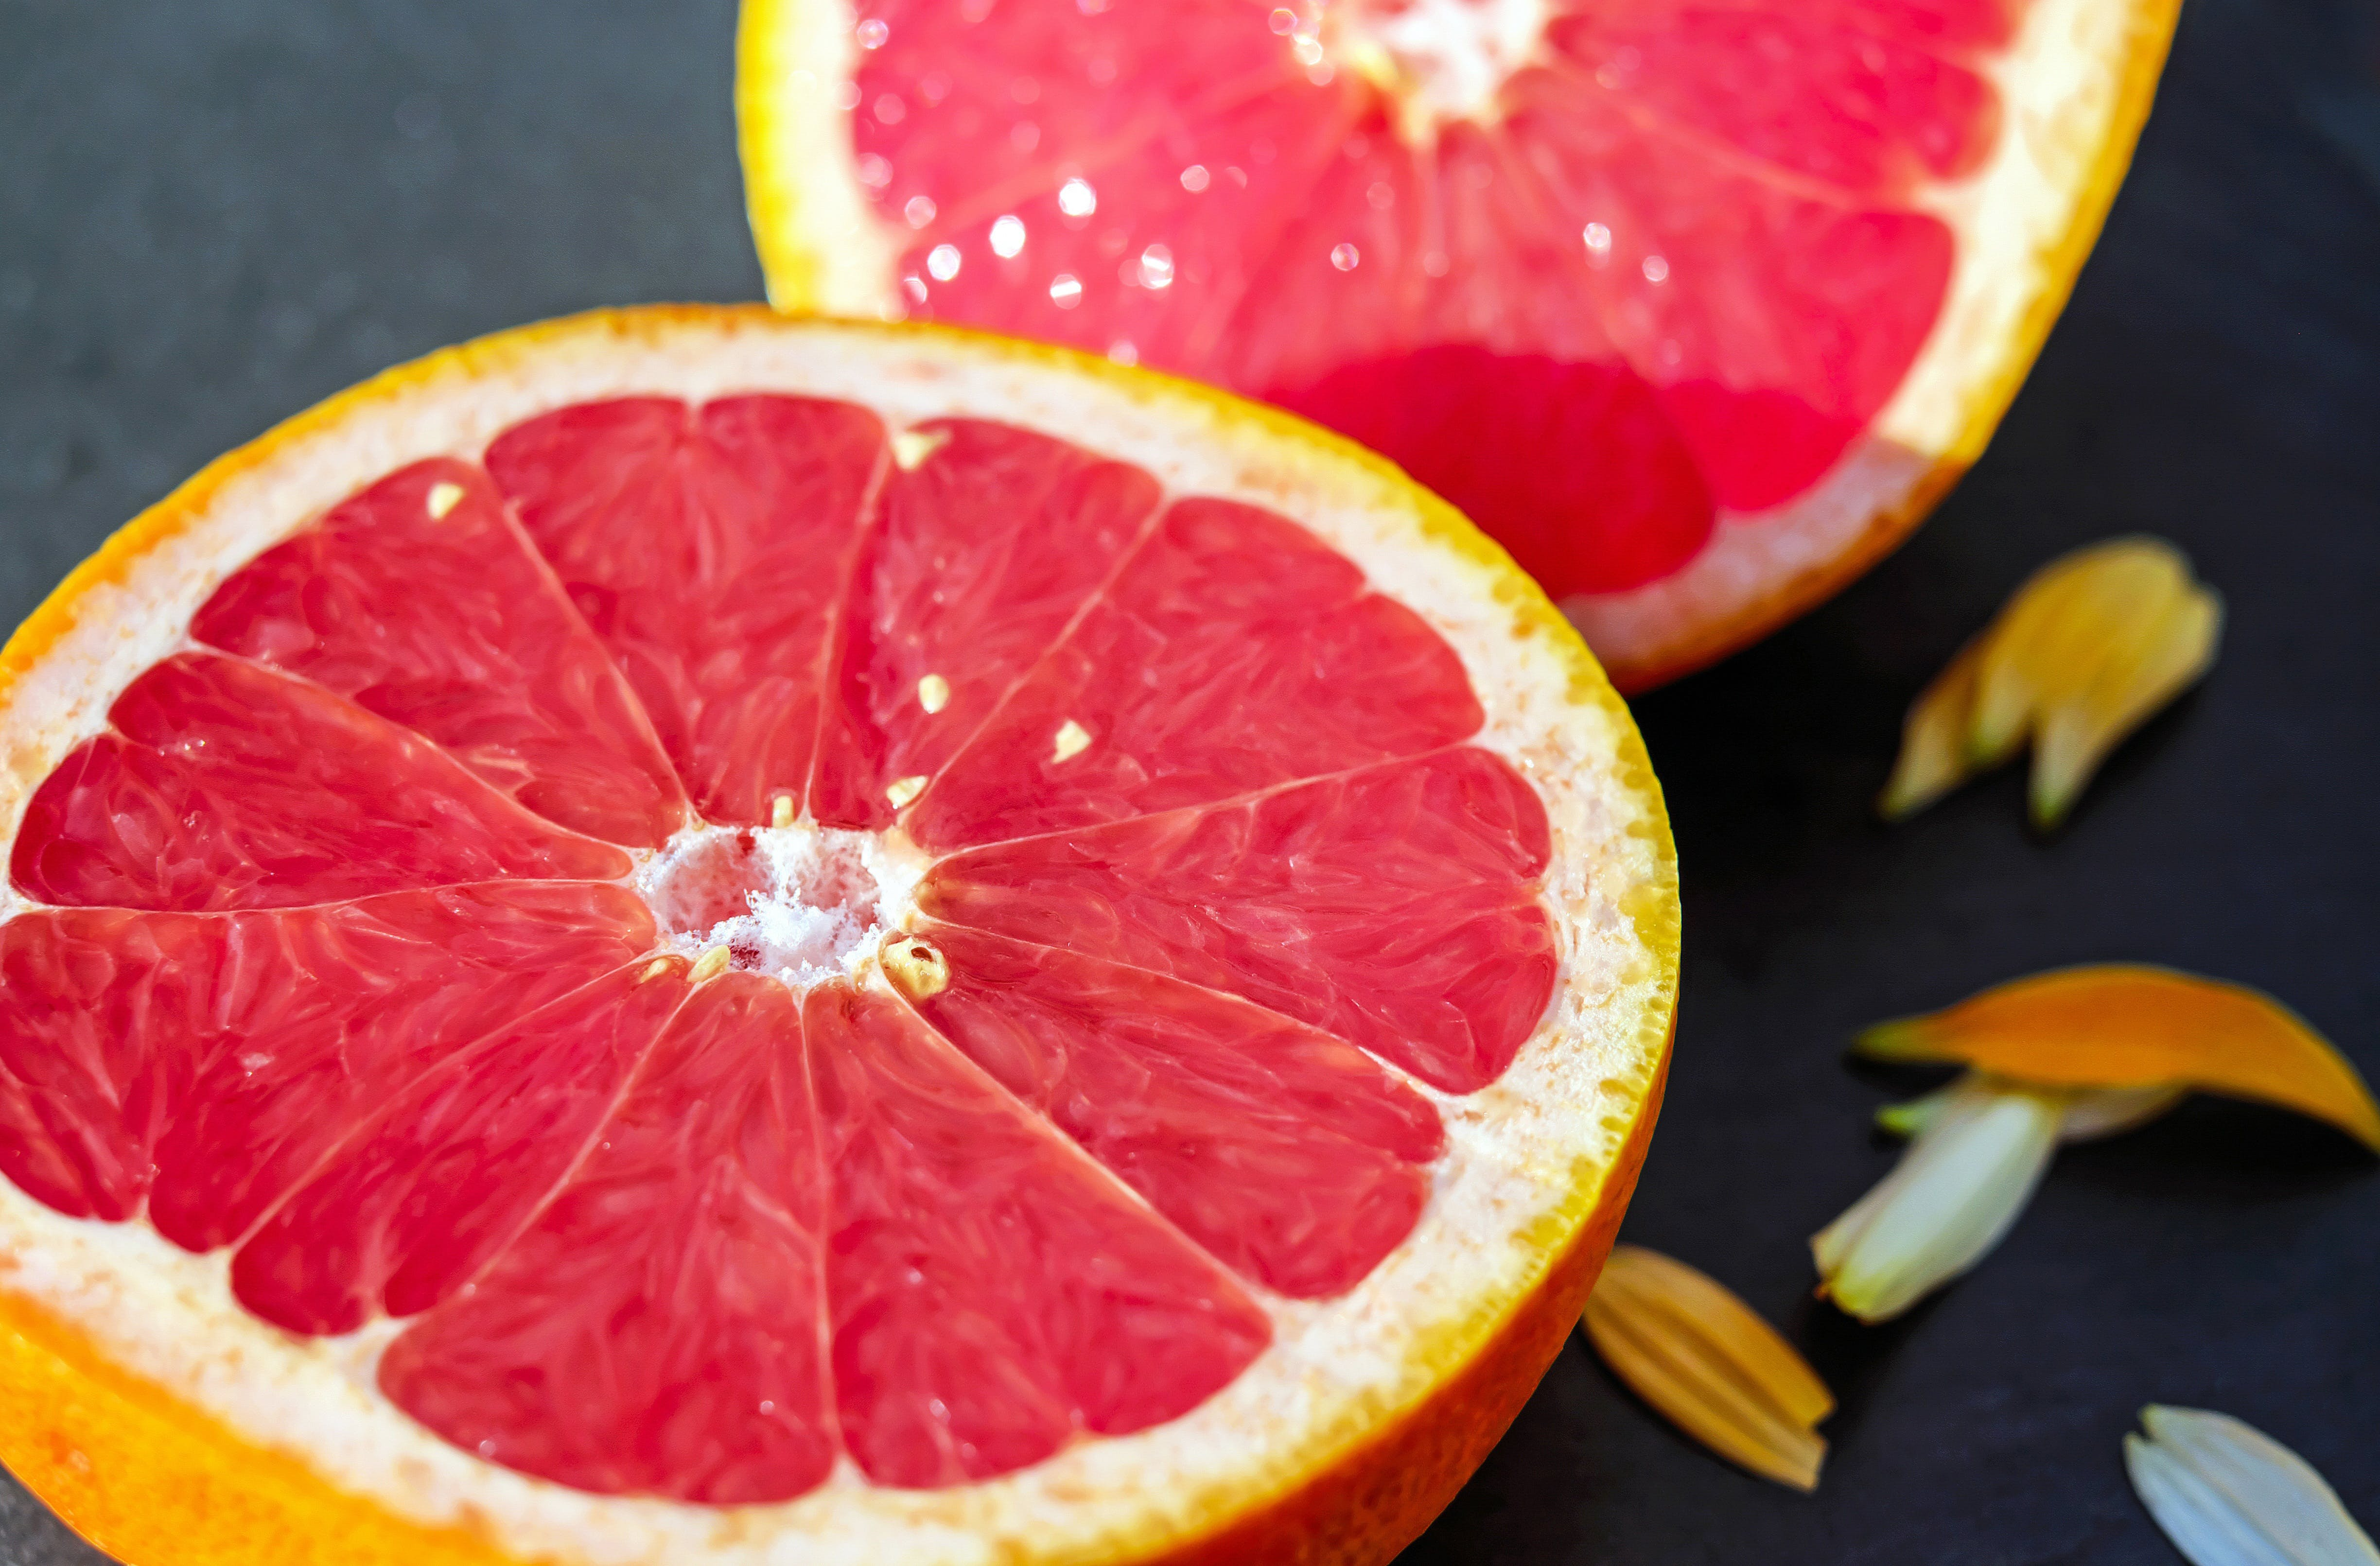 Slice Grapefruit